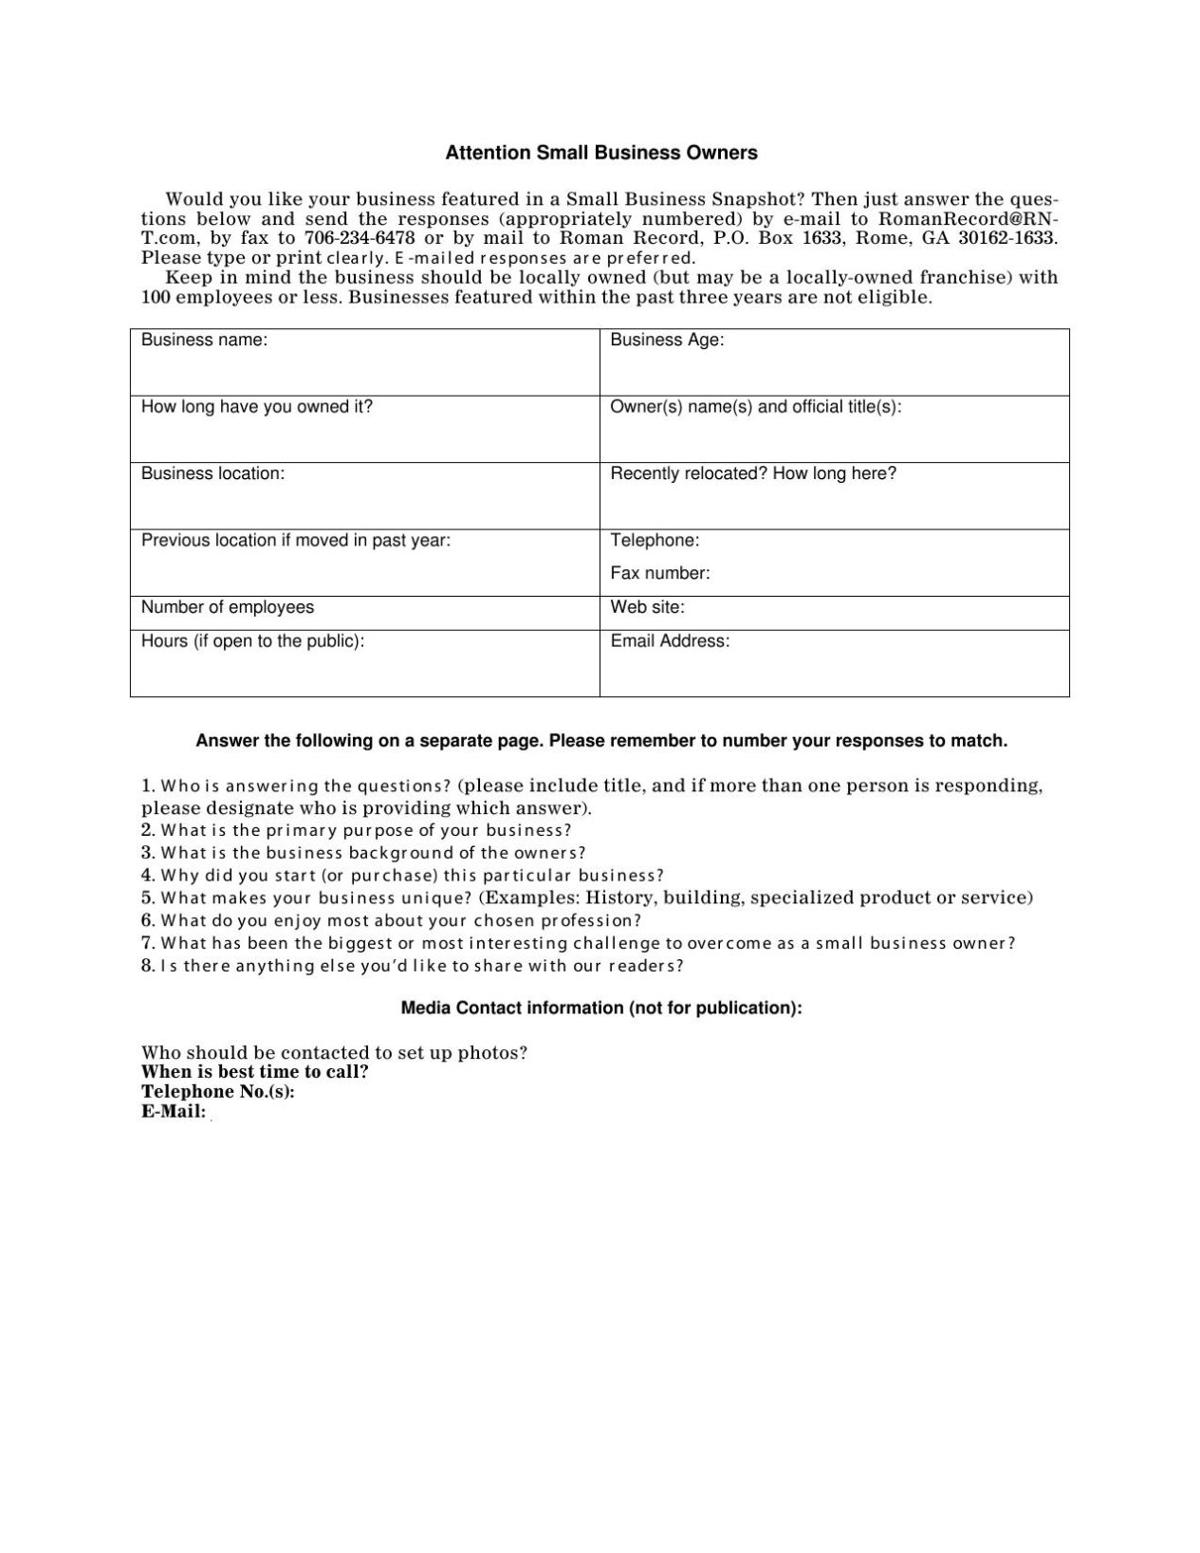 Small Business Snapshot form